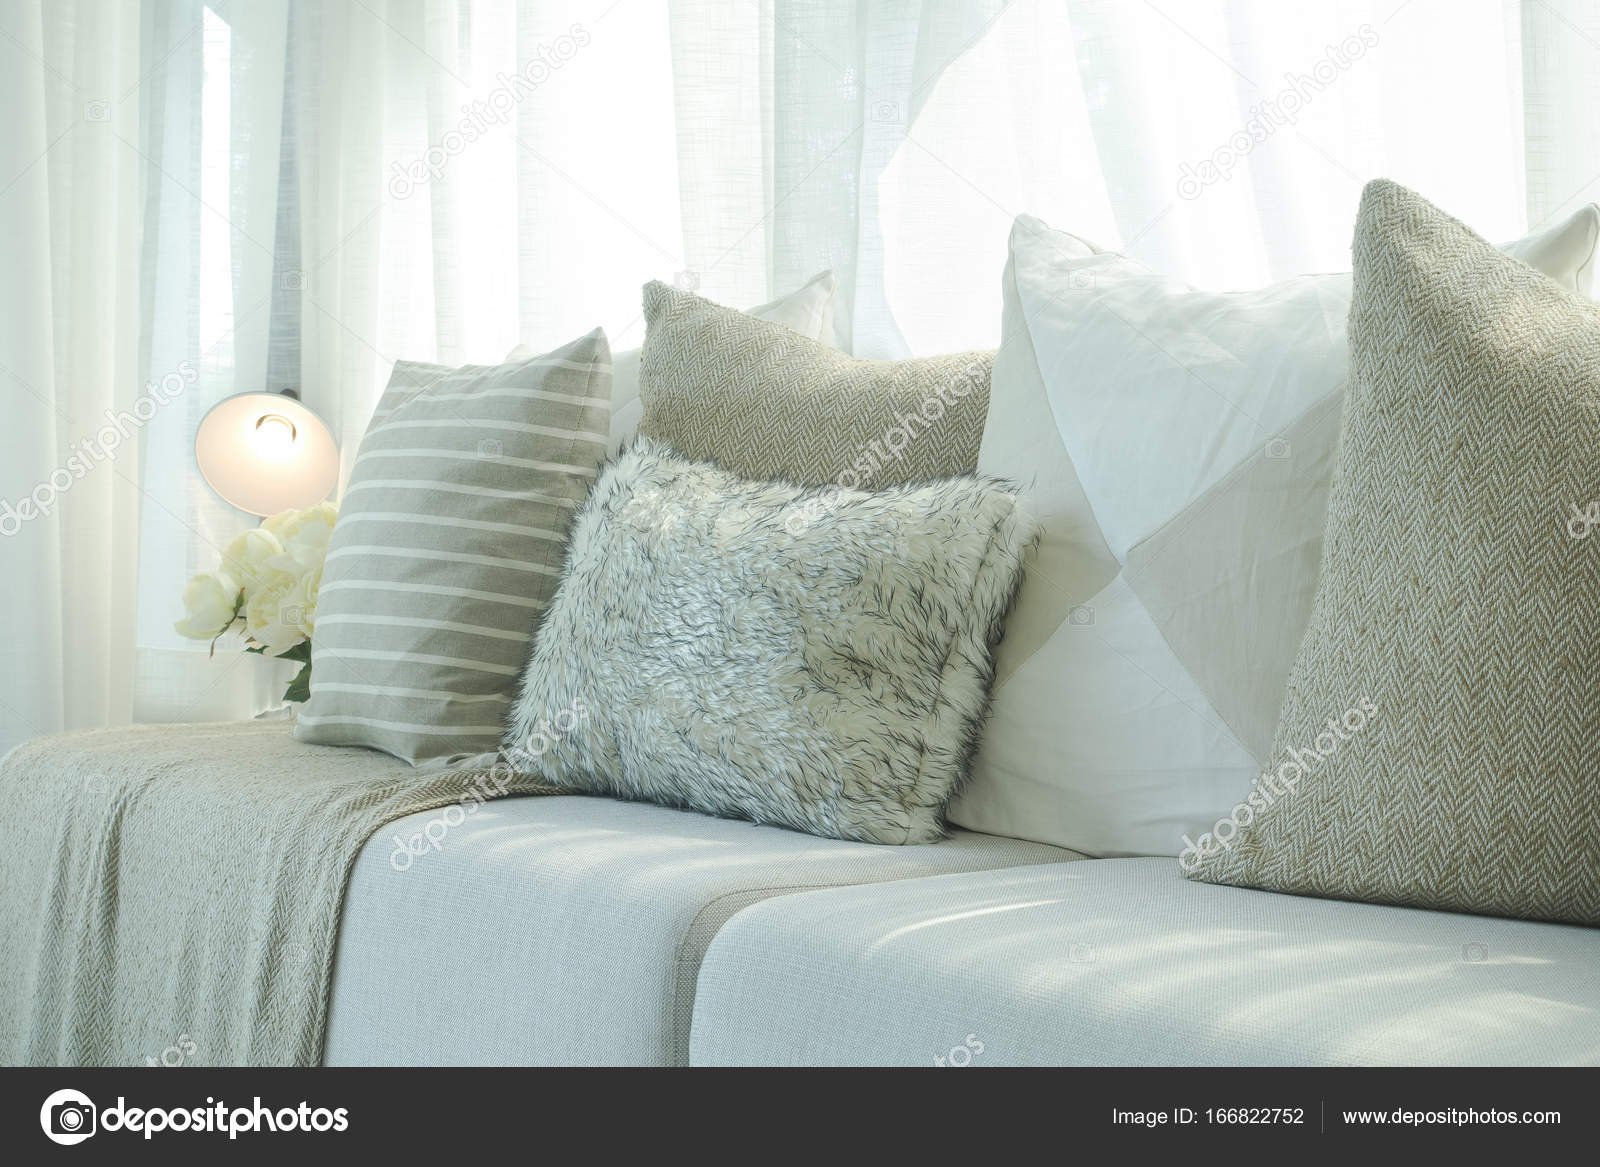 Admirable Pillows In Brown Color Scheme On Beige Sofa With Natural Uwap Interior Chair Design Uwaporg